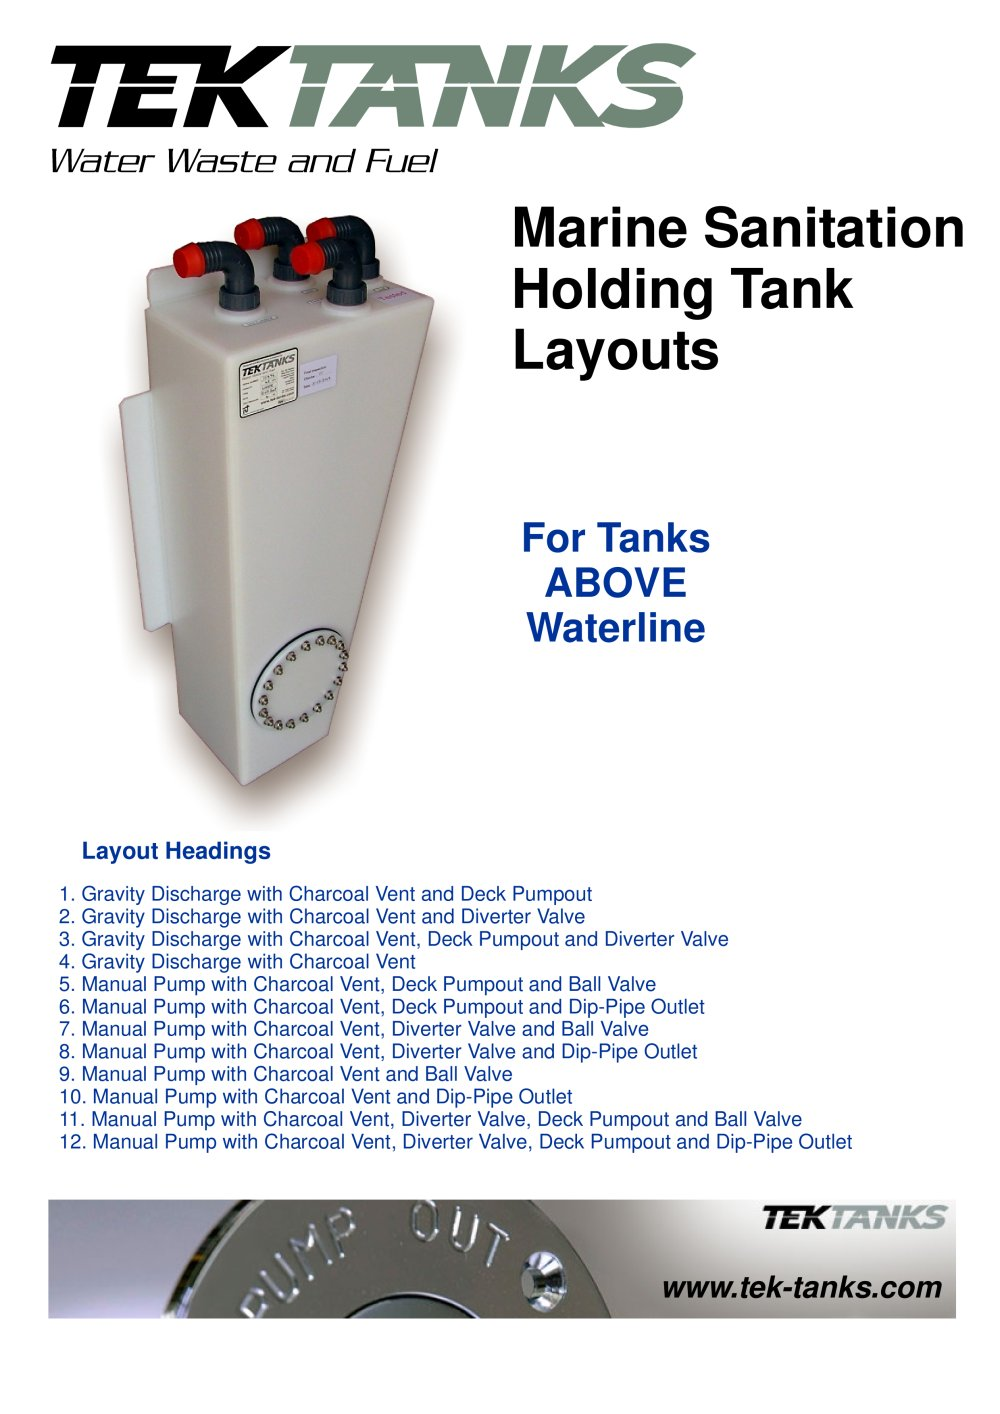 hight resolution of tank above waterline layouts 1 9 pages